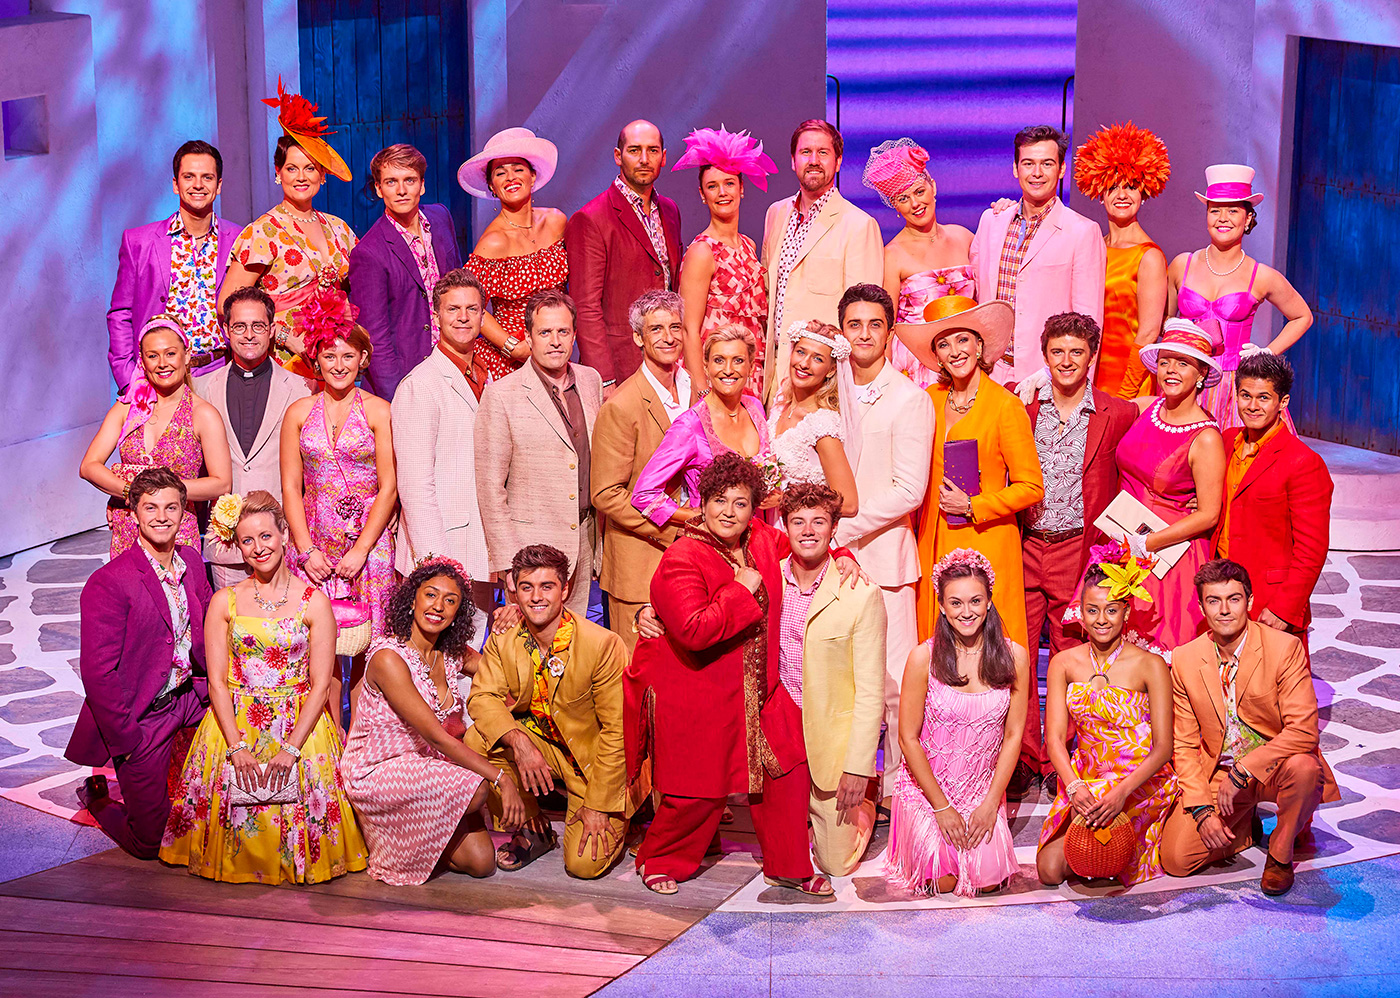 Cast of Mamma Mia. Photo by Brinkhoff Mögenburg